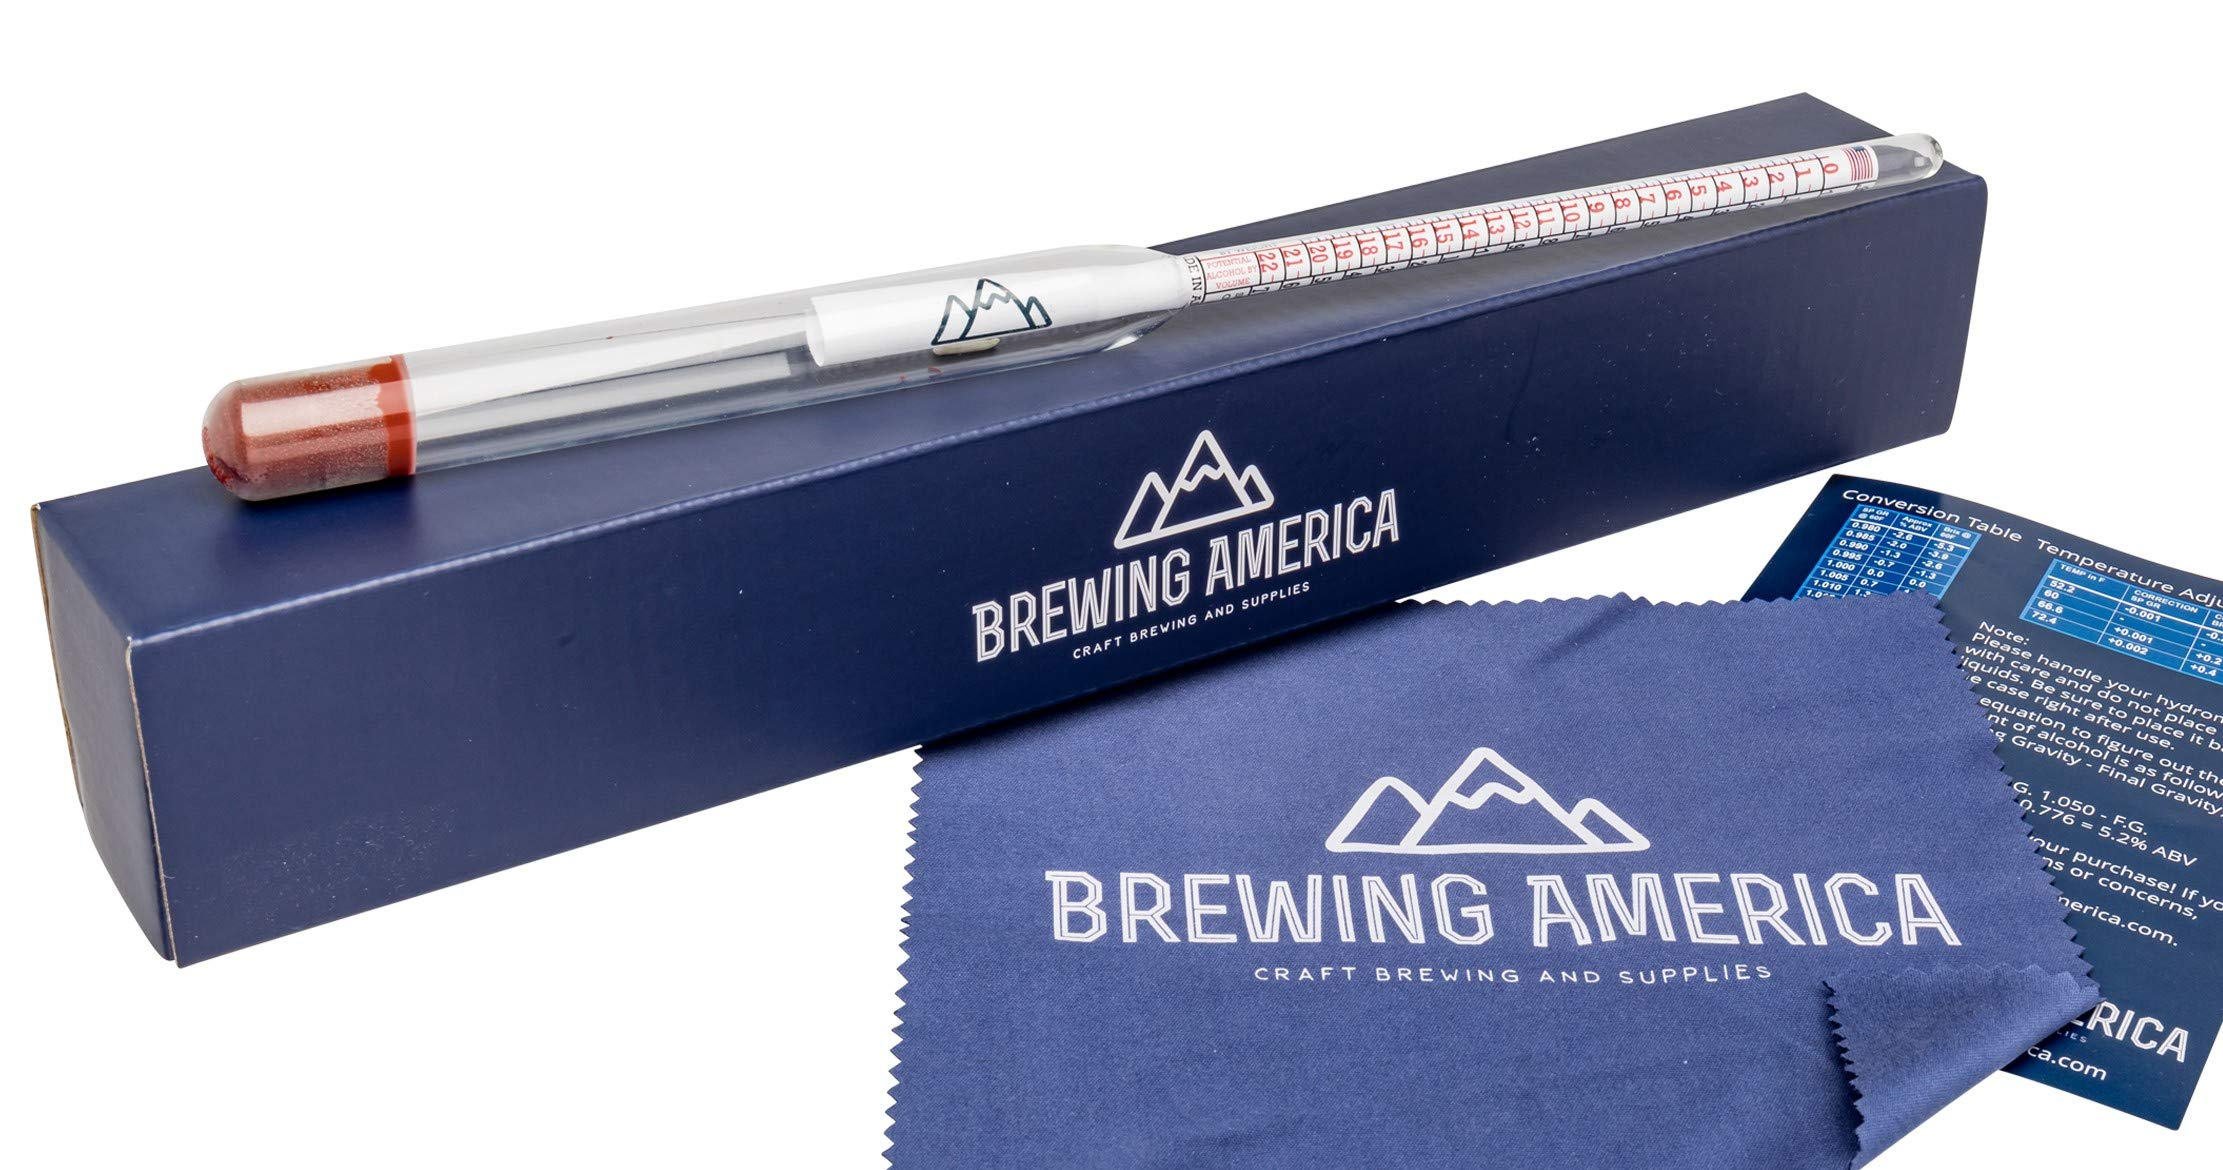 Specific Gravity Hydrometer Alcohol Tester - Pro Series American-Made Brewing ABV Testing: Beer, Wine, Cider, Mead Homebrew Fermented Beverages - Triple Scale Hydrometer by Brewing America